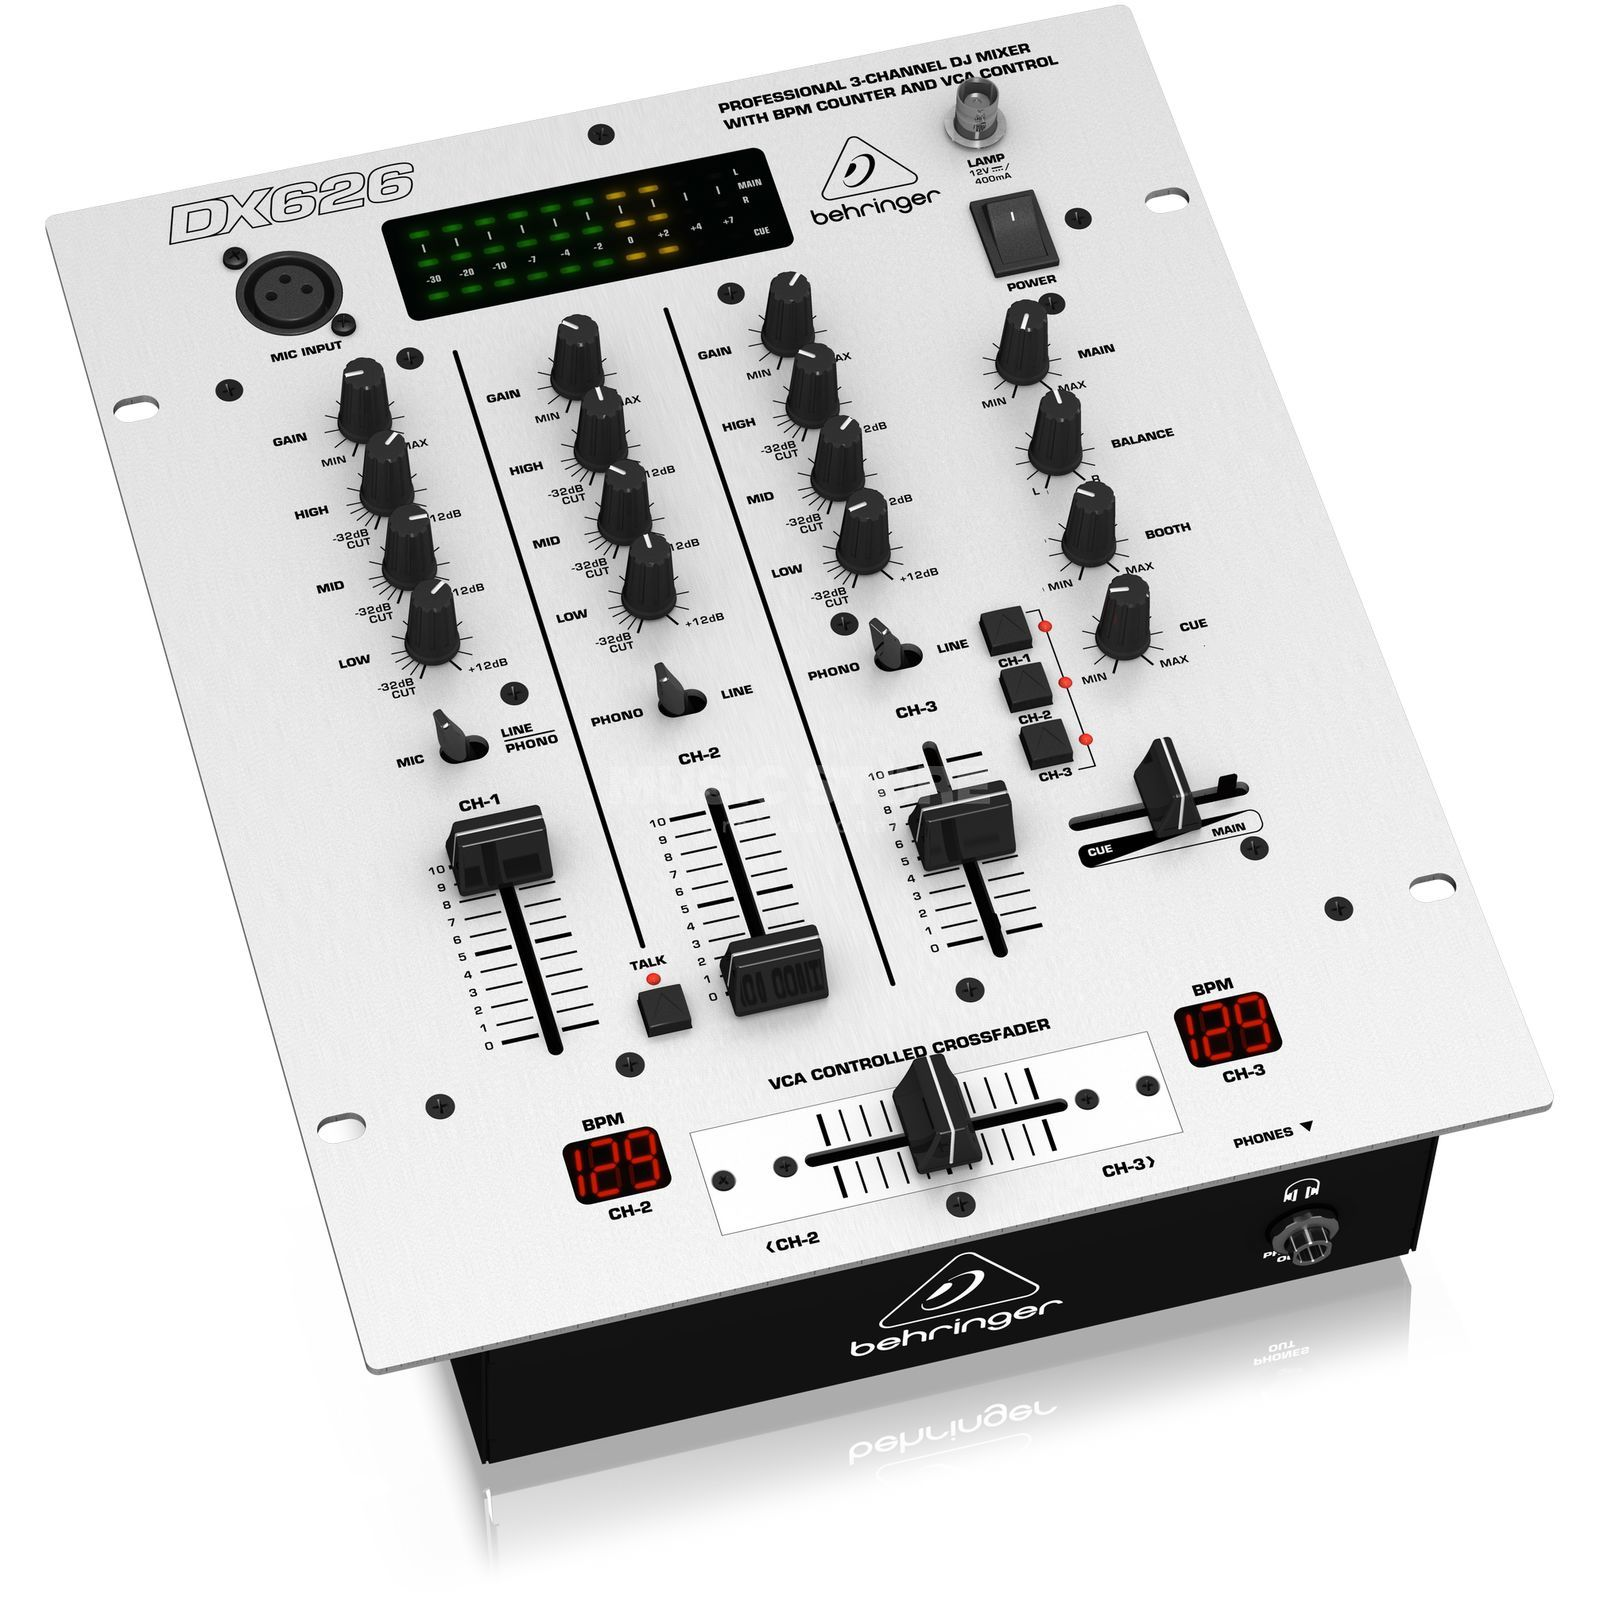 Behringer DX-626 Pro 3-Channel DJ Mixer Product Image